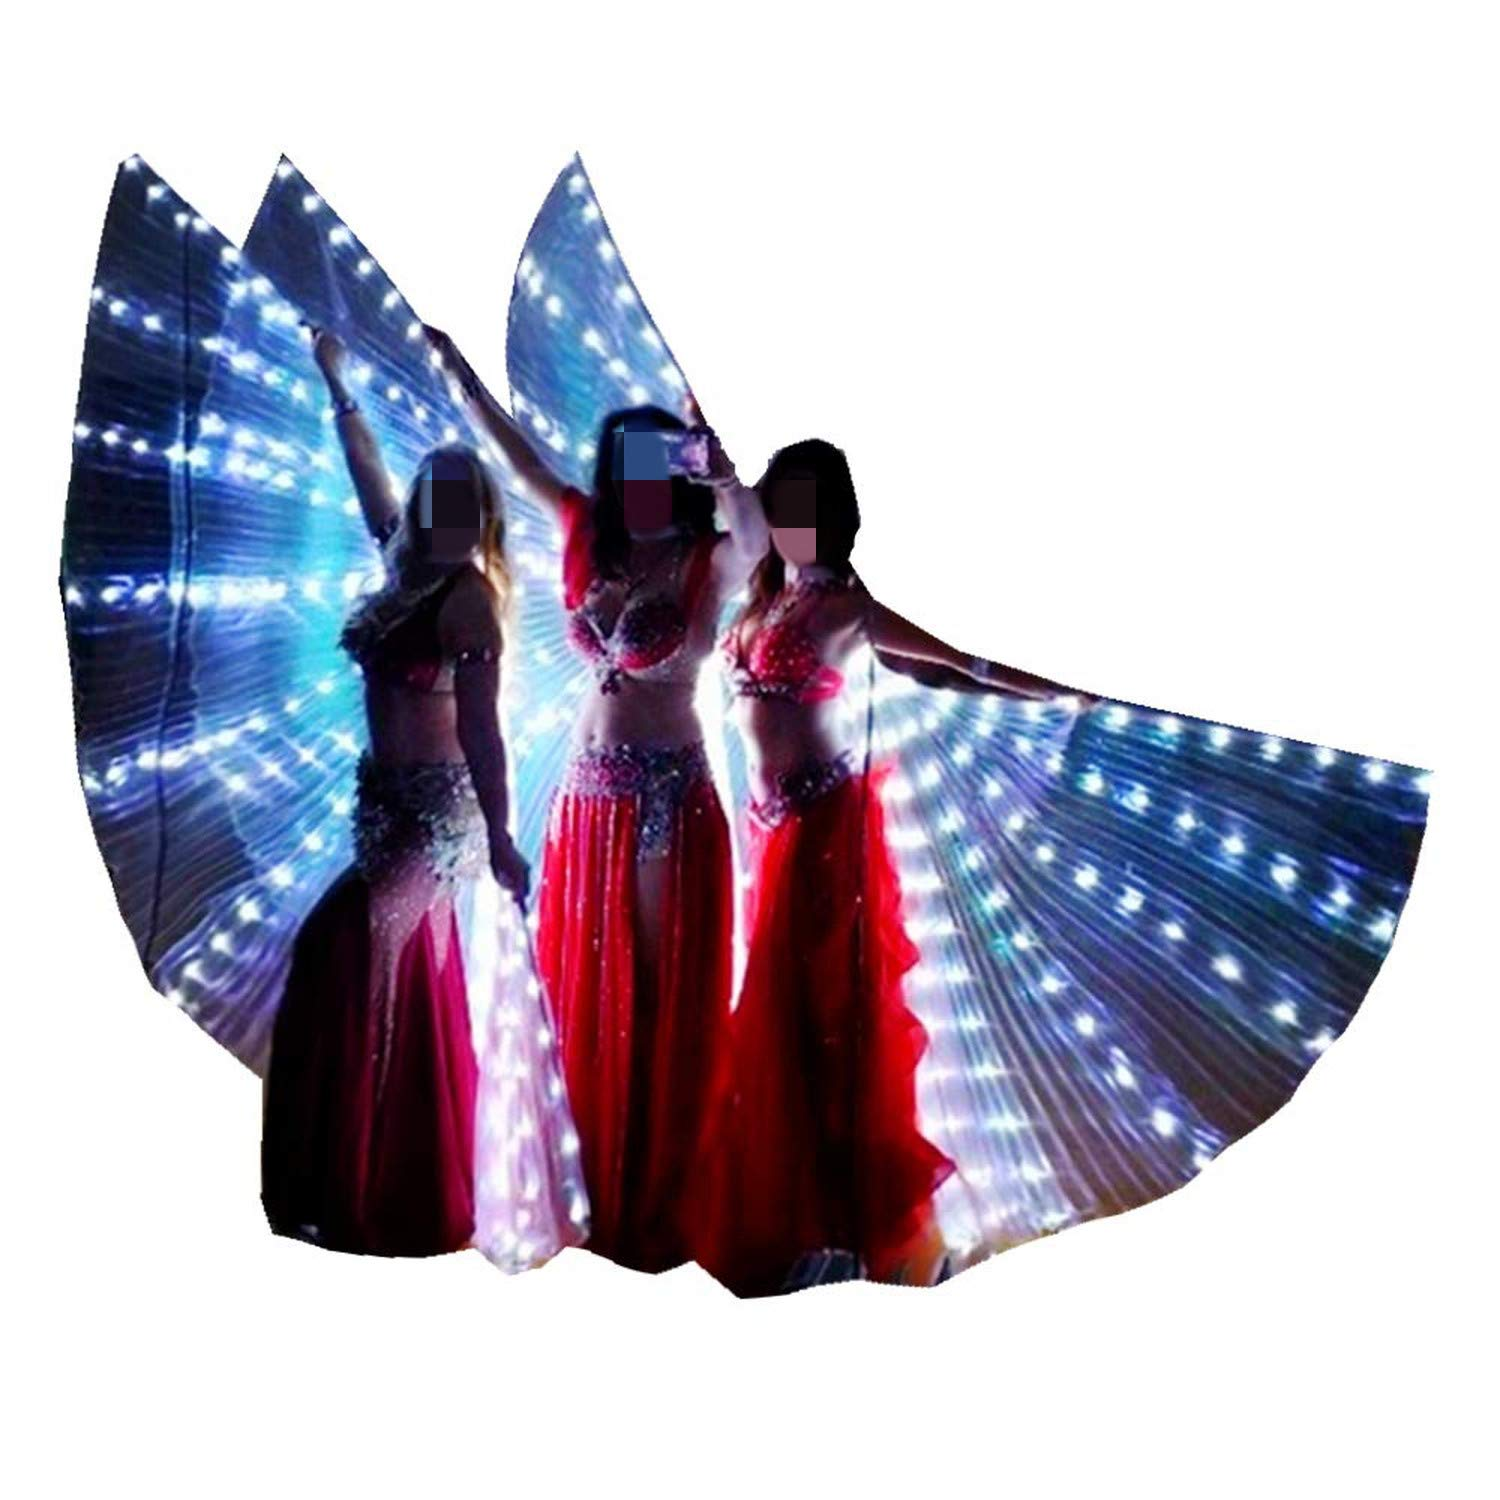 xiaoxiaoland εїз Costume Accessory LED Wings - Belly Dance Light Up Wings Party Club Wear with Flexible Sticks for Women/Girls360degree,Neck,White by xiaoxiaoland